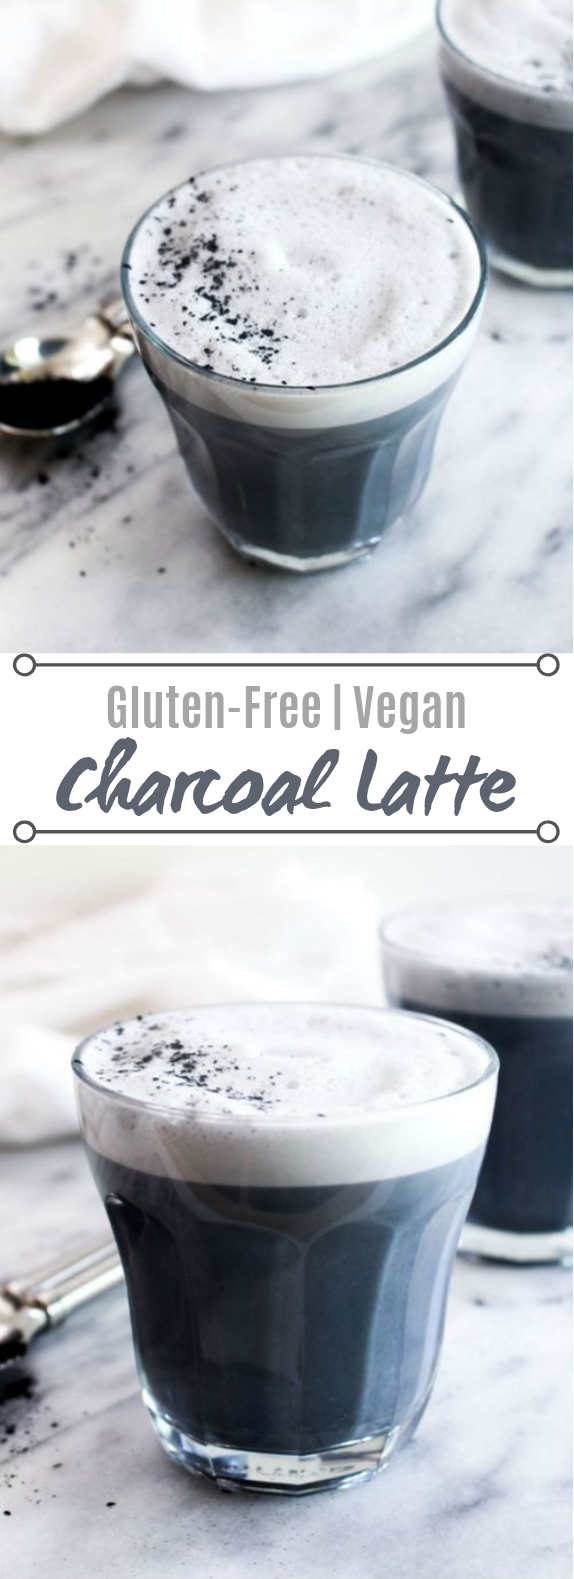 Detox Charcoal Latte #drinks #healthy